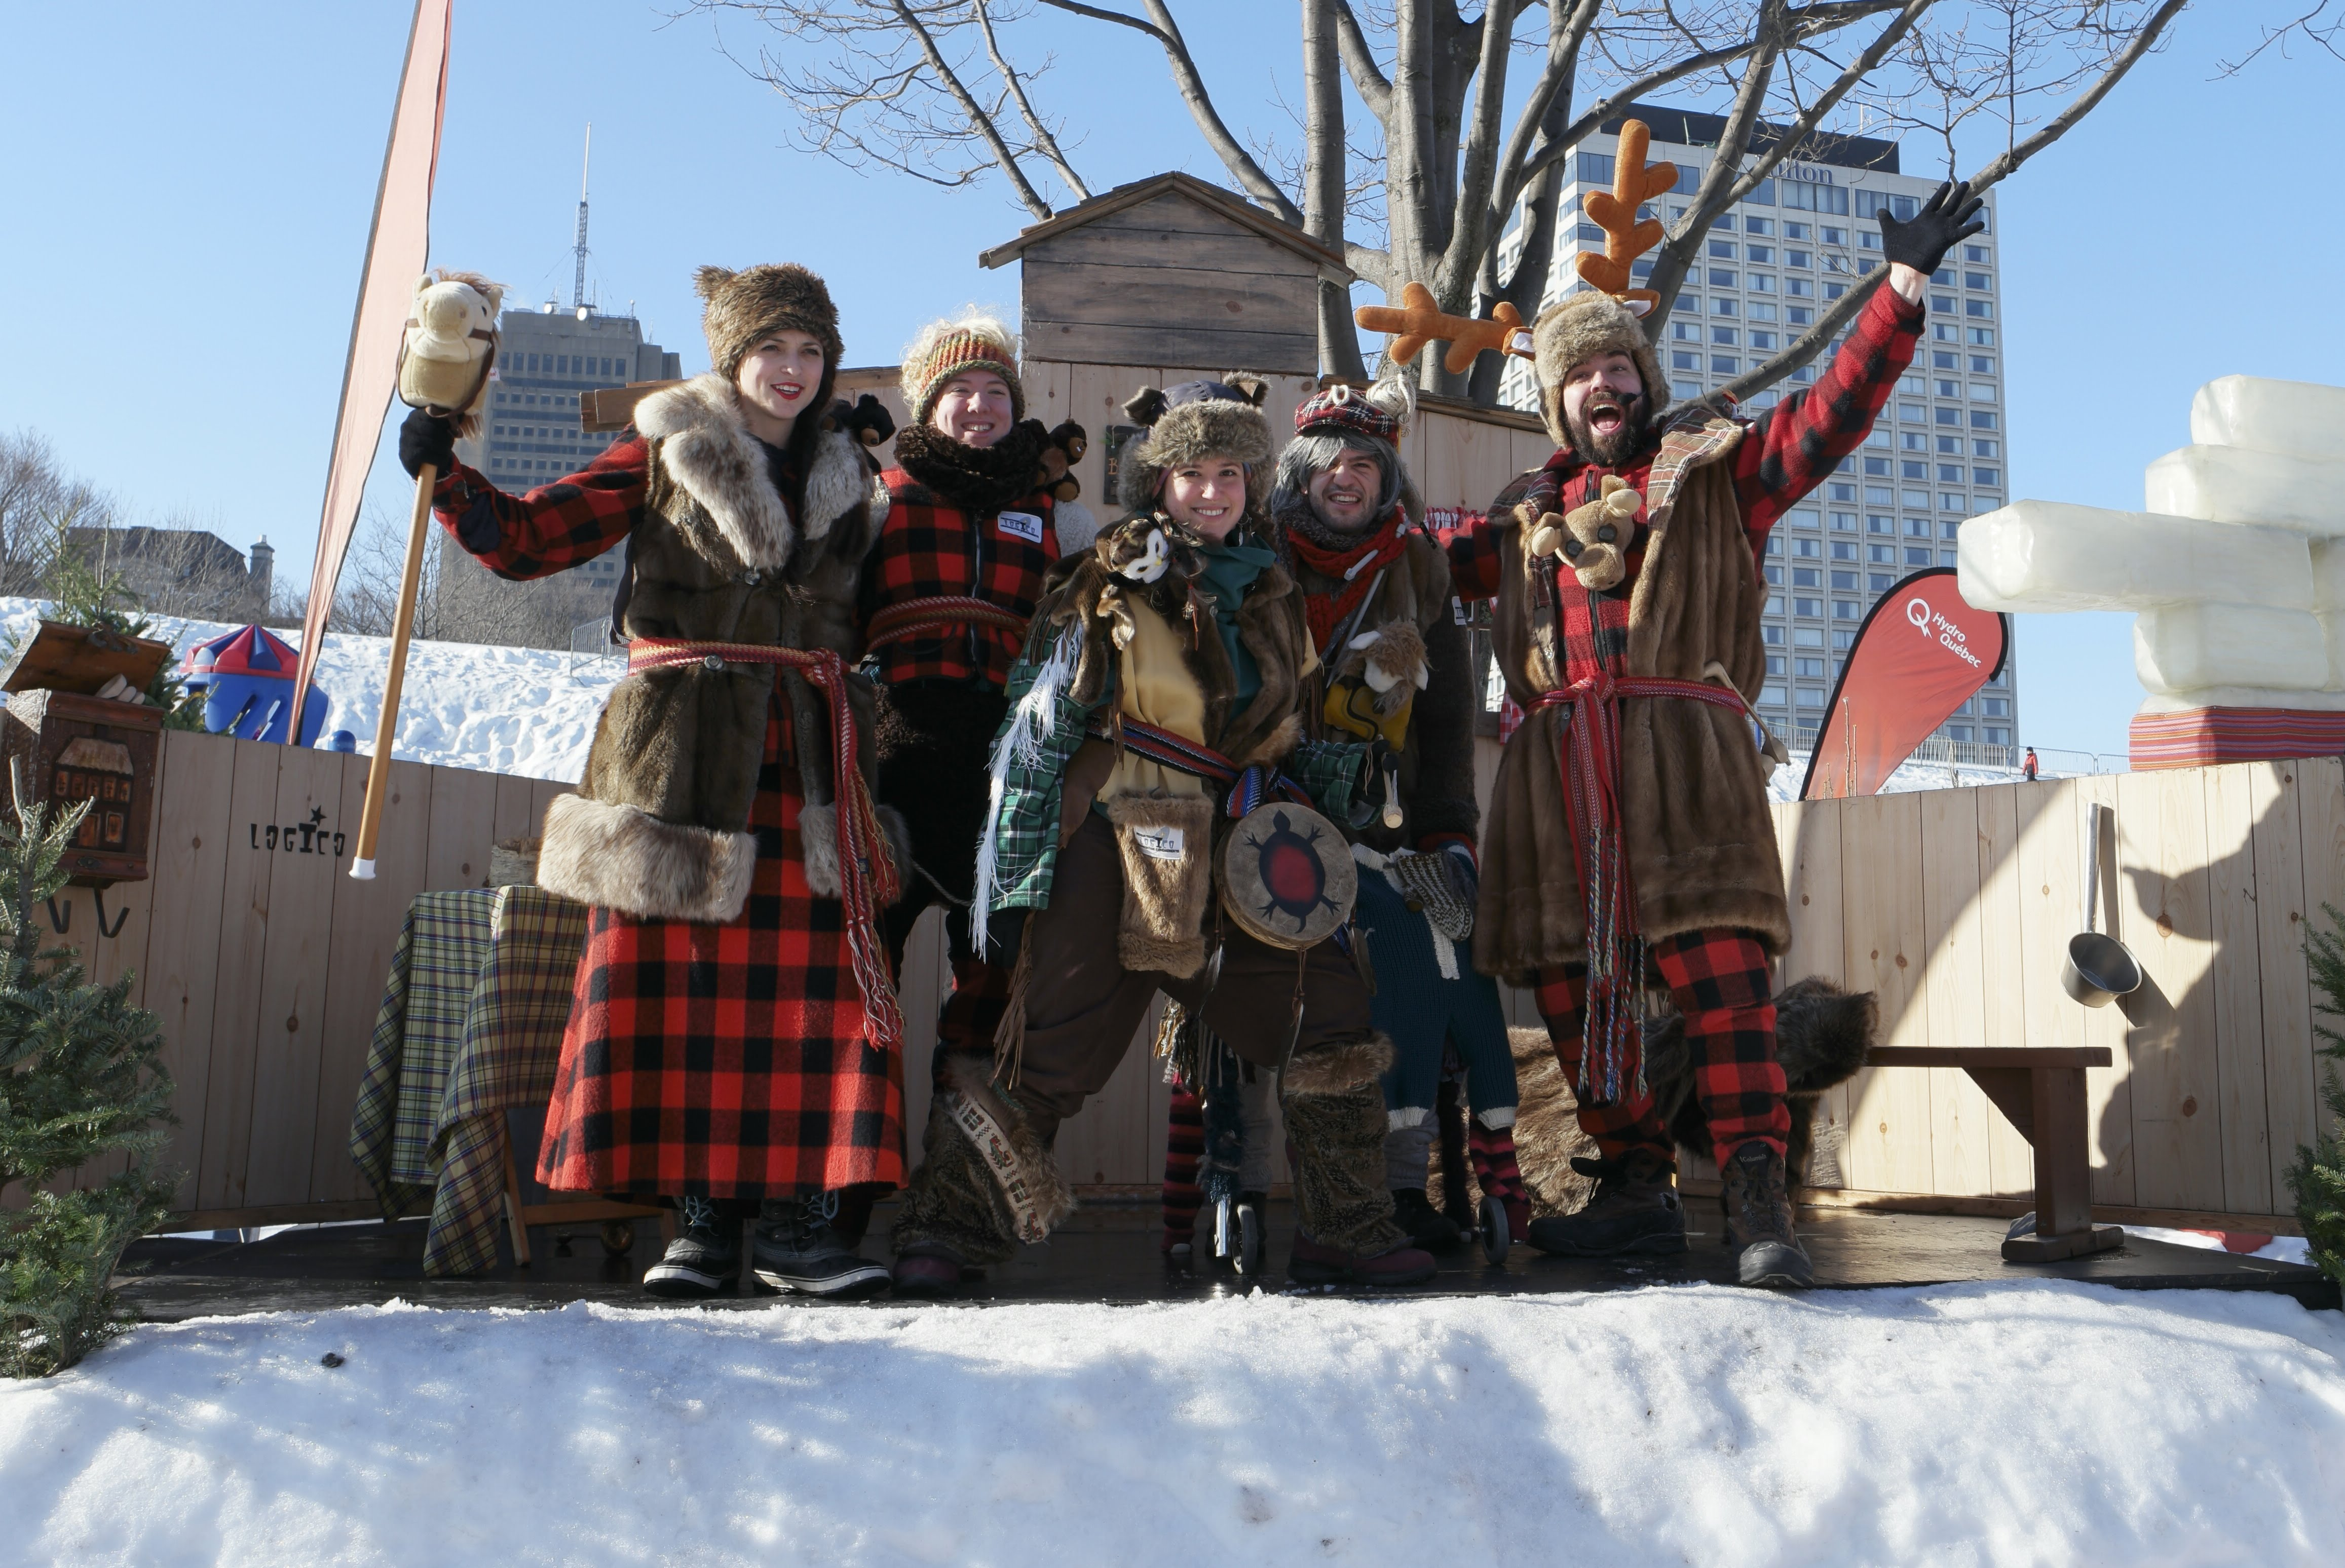 Typical costumes at the Quebec Carnival